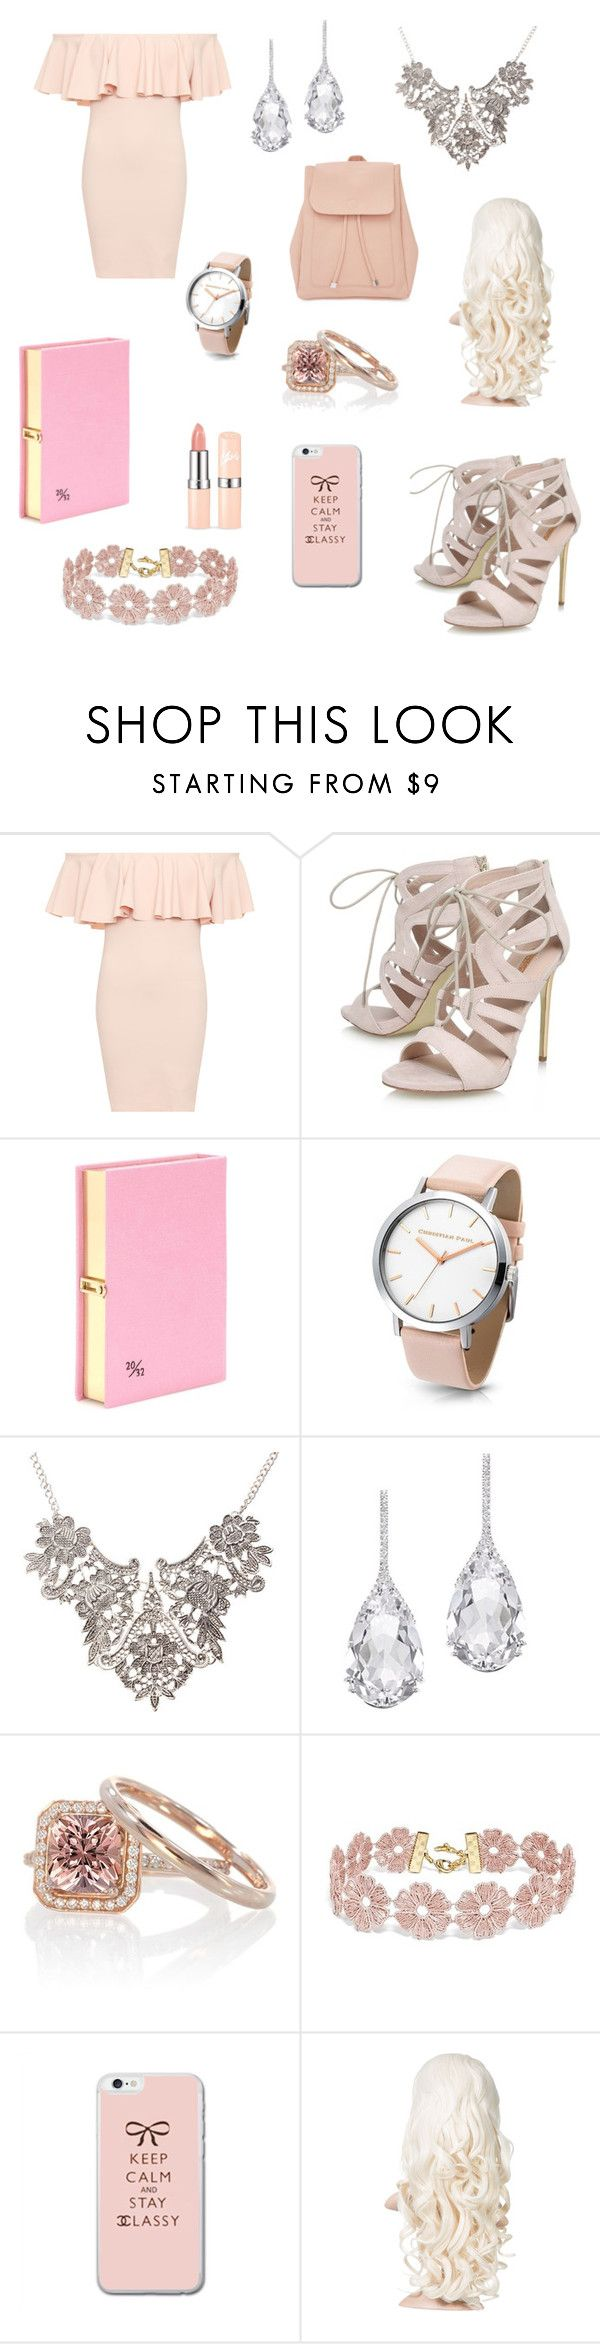 """first day of school"" by meltdownmaniac ❤ liked on Polyvore featuring WearAll, Carvela, Olympia Le-Tan, Plukka, BaubleBar and New Look"